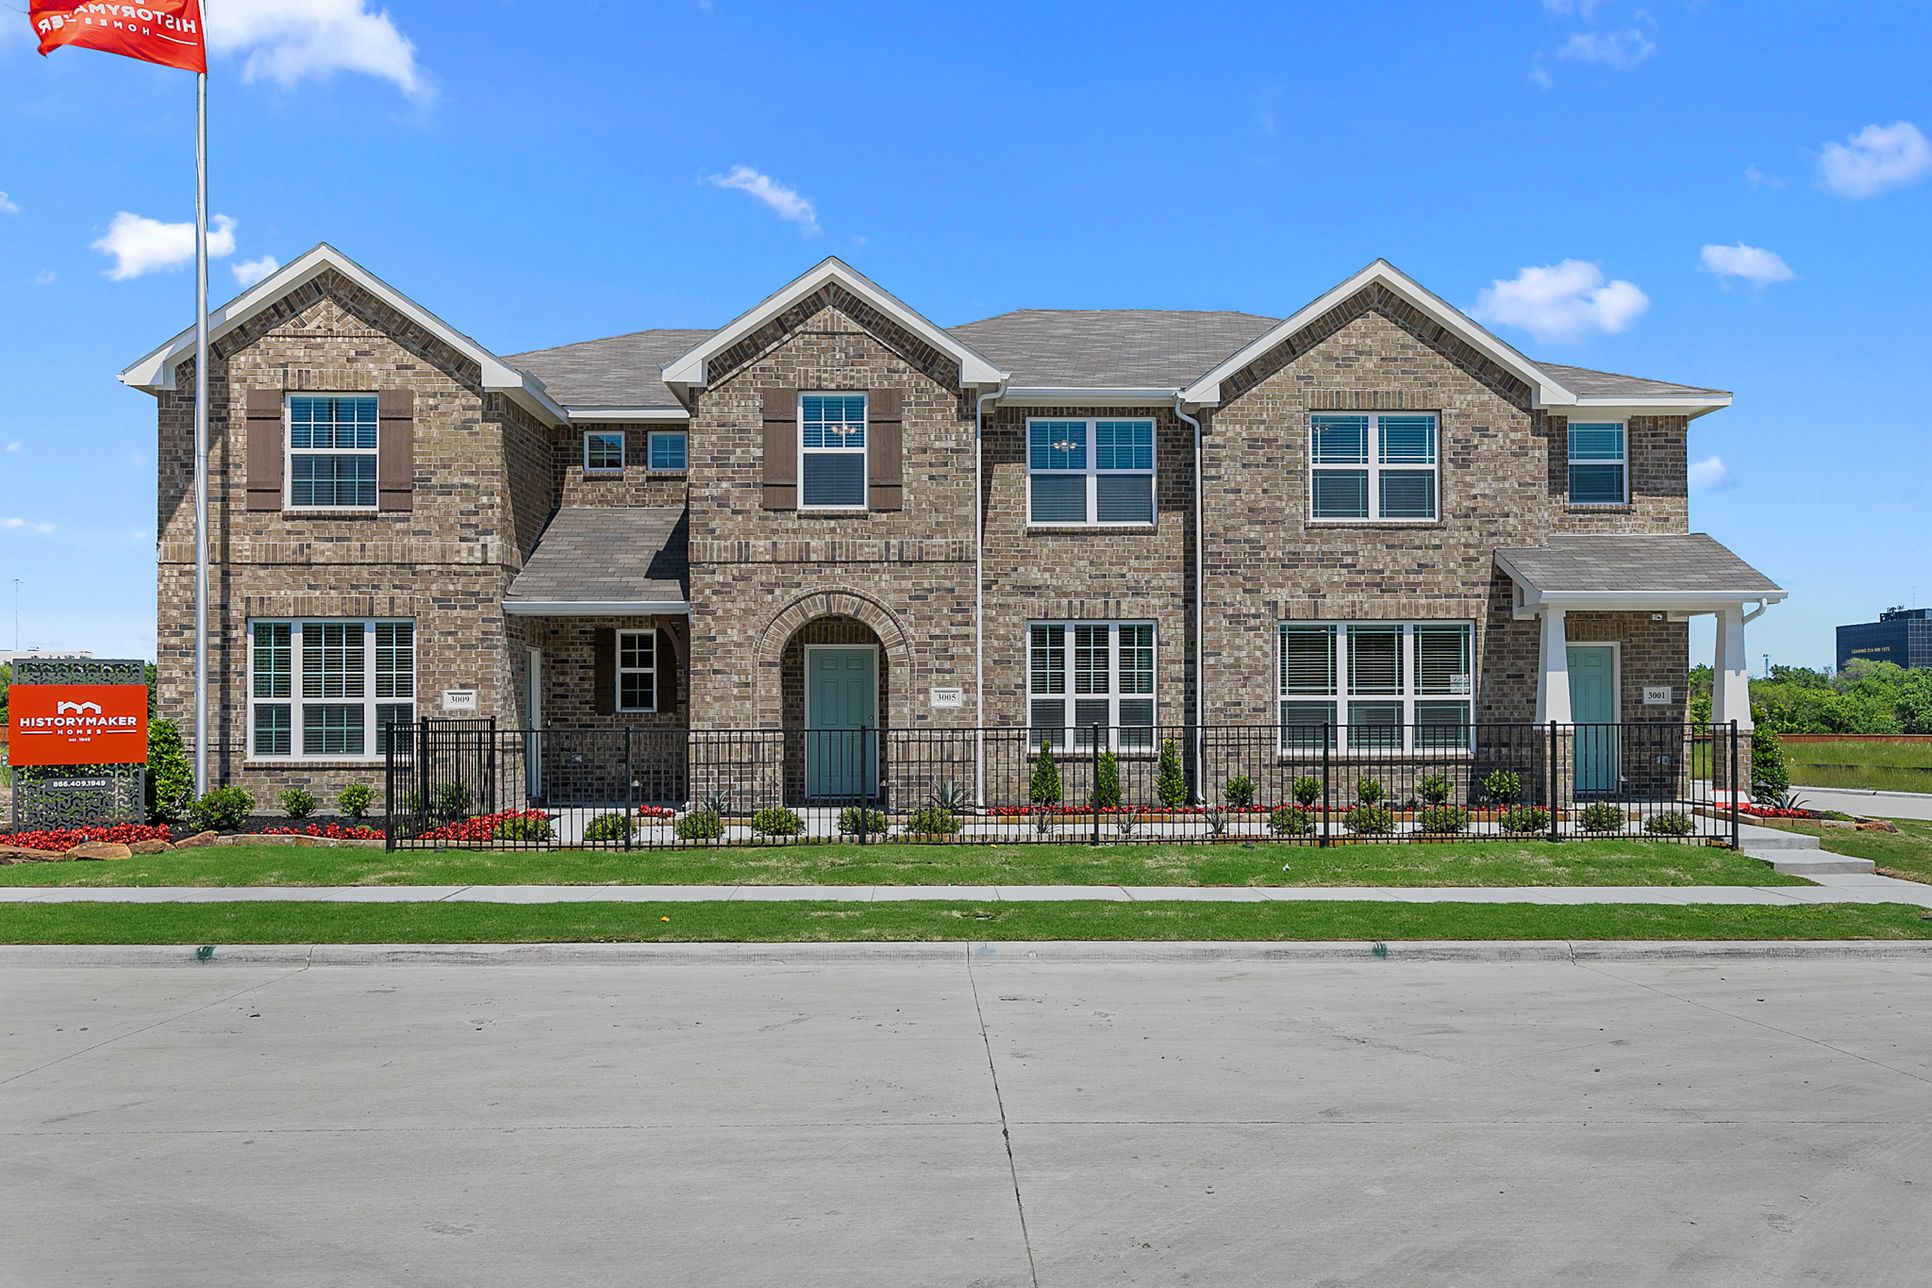 Cloverleaf Crossing Townhomes Model